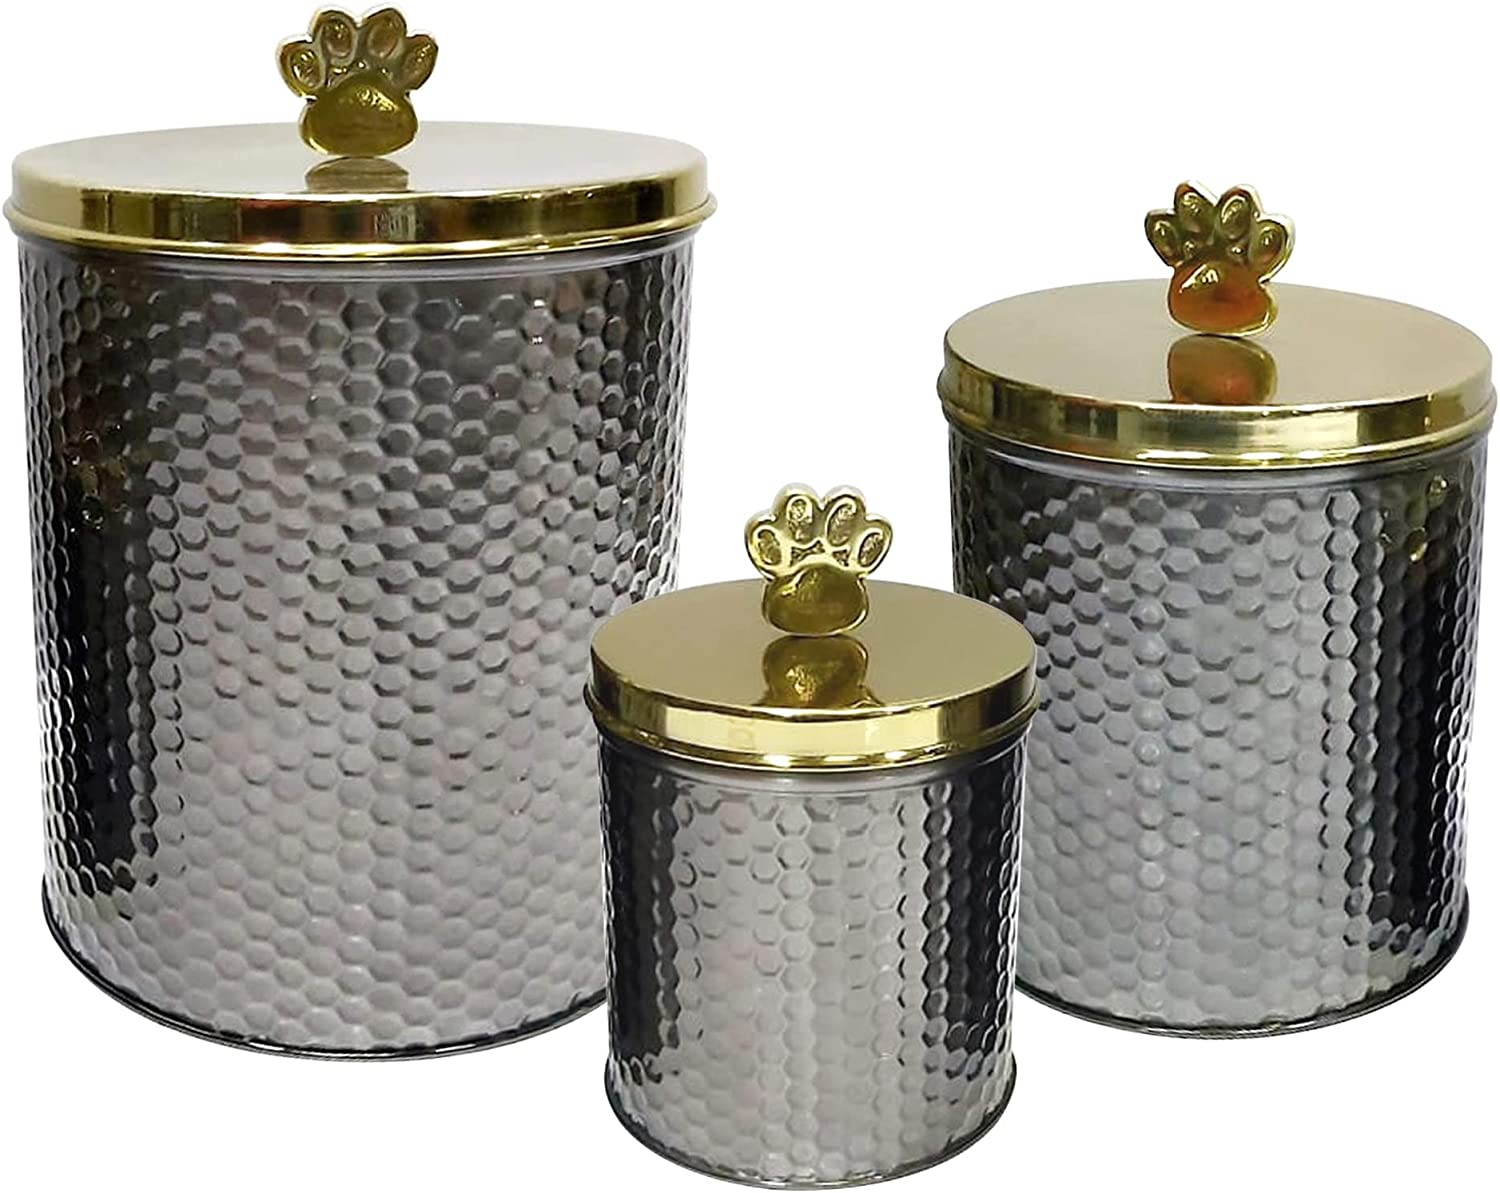 nu steel metal black nickel Embossed 3 Pc set Jumbo Pet Canister with Golden Paw Handle, Dog Food Treat Storage Container Jar with golden Lid, Tight Fitting Lids for Dog Biscuit Cookies